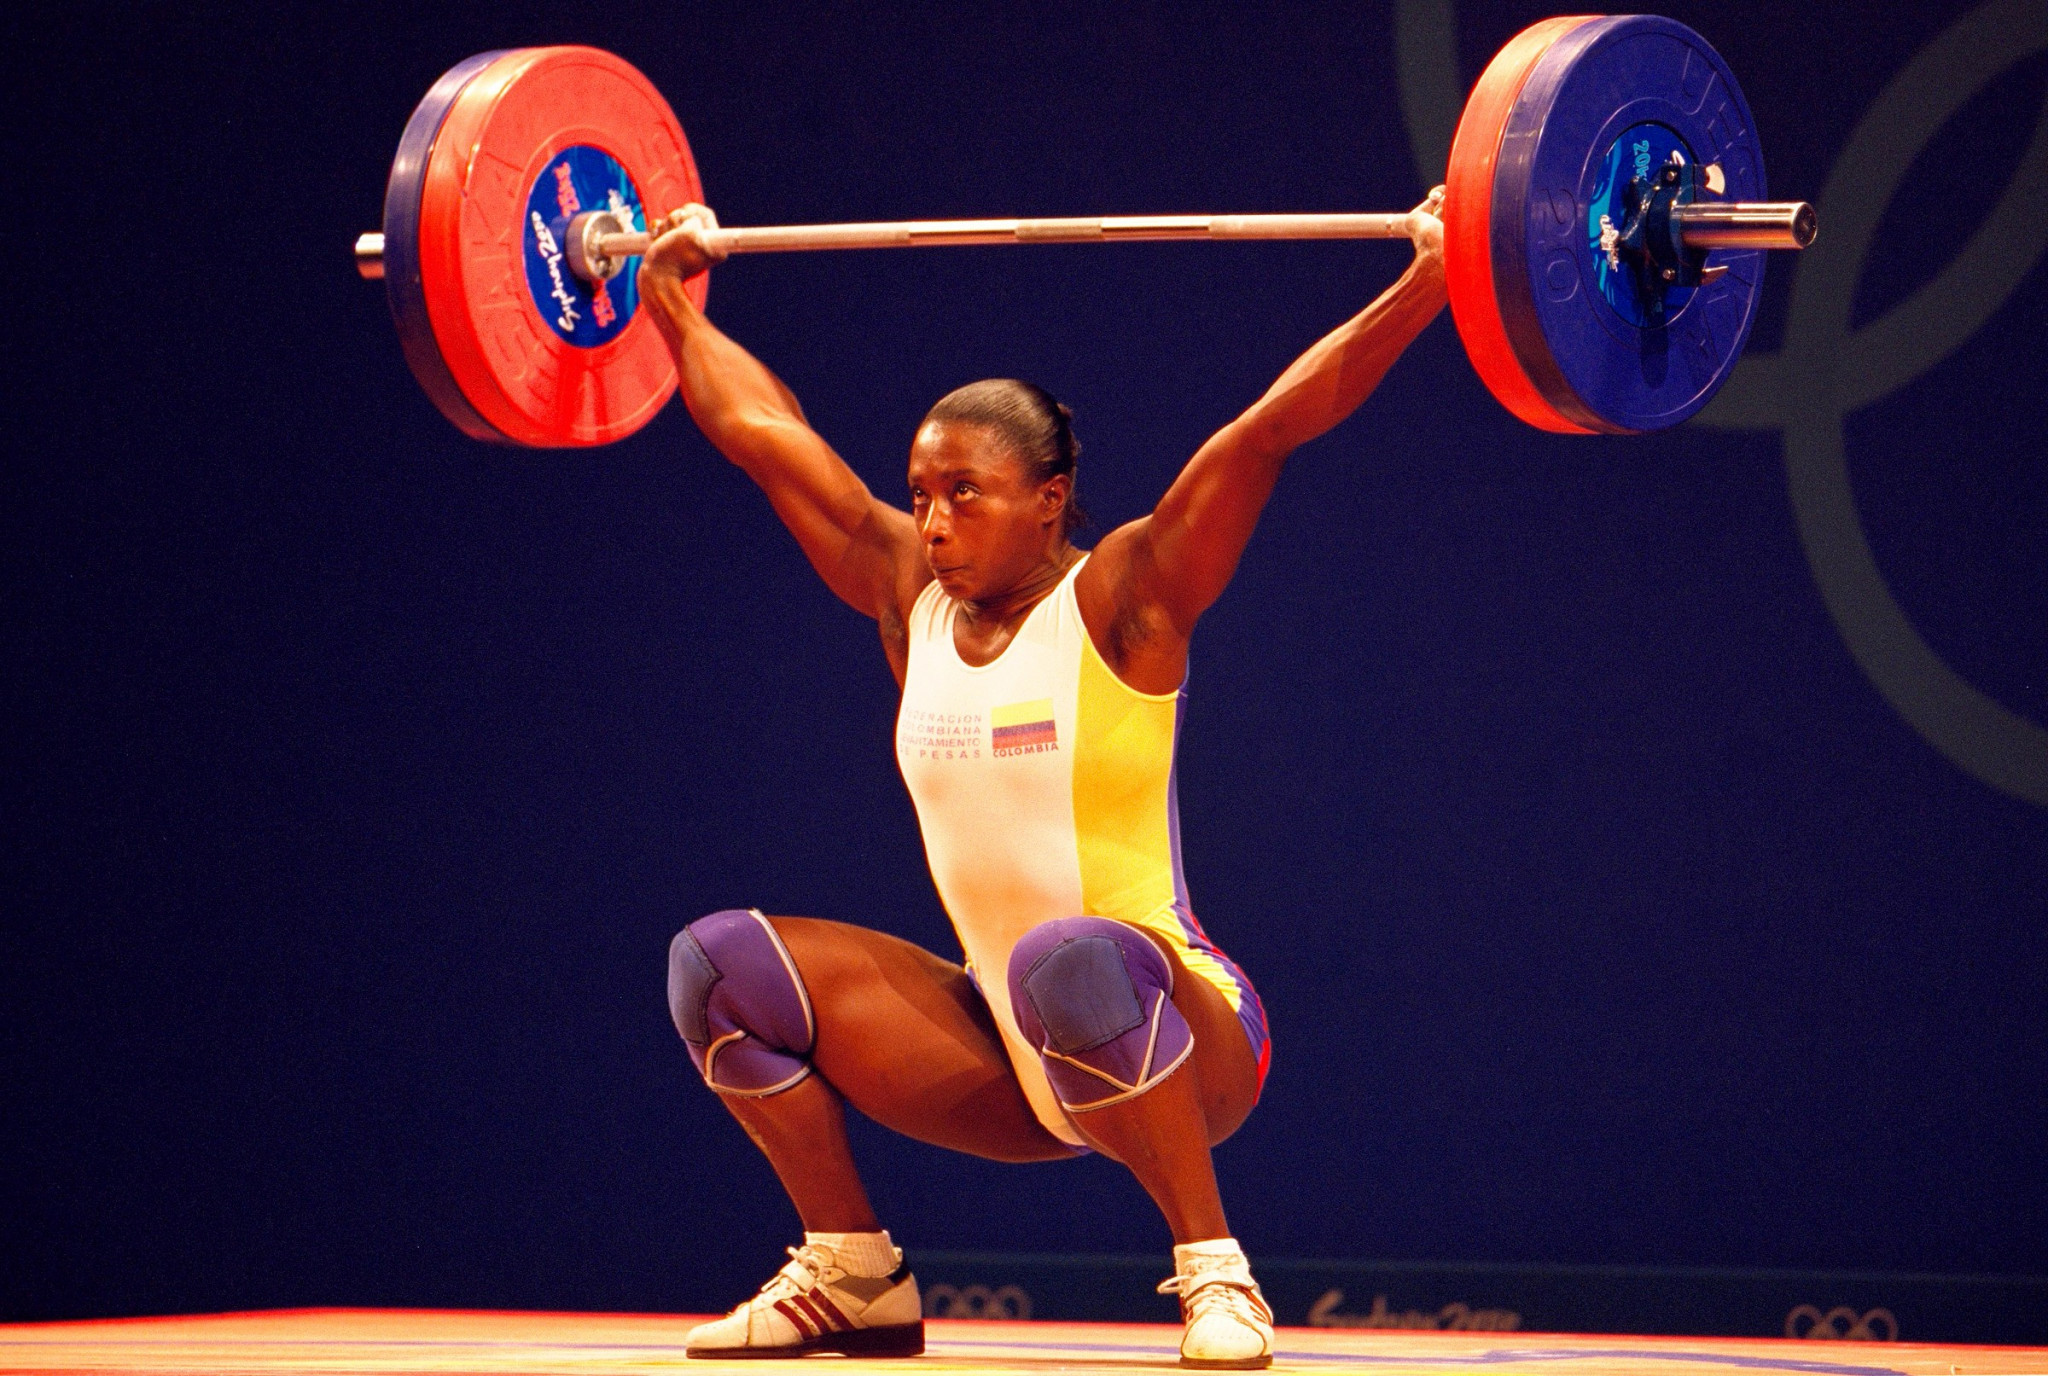 Colombia has won more Olympic medals in weightlifting than in any other sport ©Getty Images